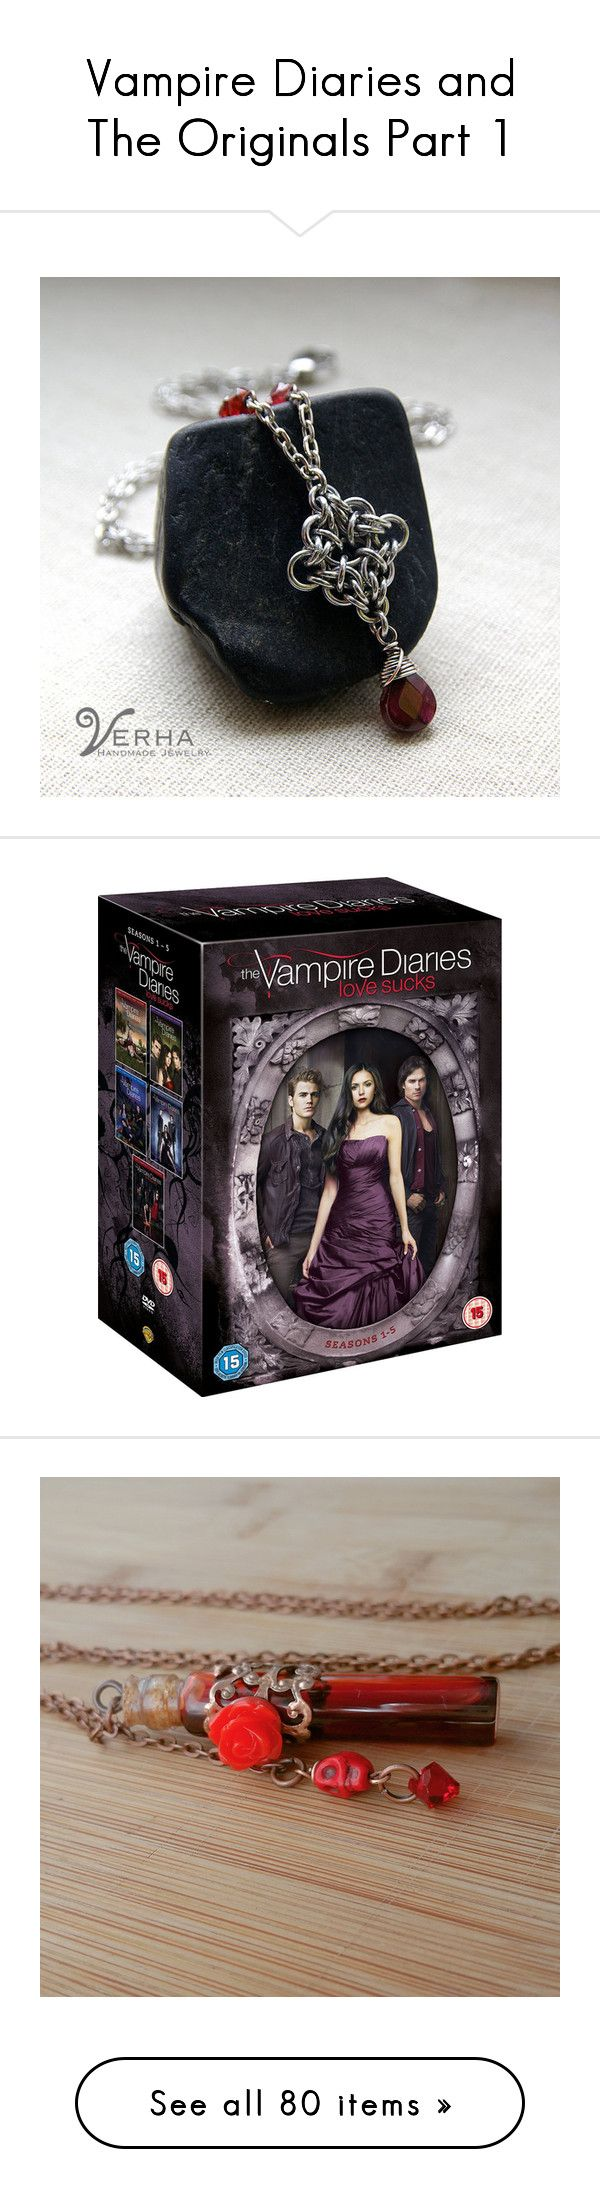 """""""Vampire Diaries and The Originals Part 1"""" by allie-19 ❤ liked on Polyvore featuring jewelry, necklaces, garnet jewellery, garnet necklace, garnet jewelry, movies, home, home decor, rustic home accessories e skull home decor"""